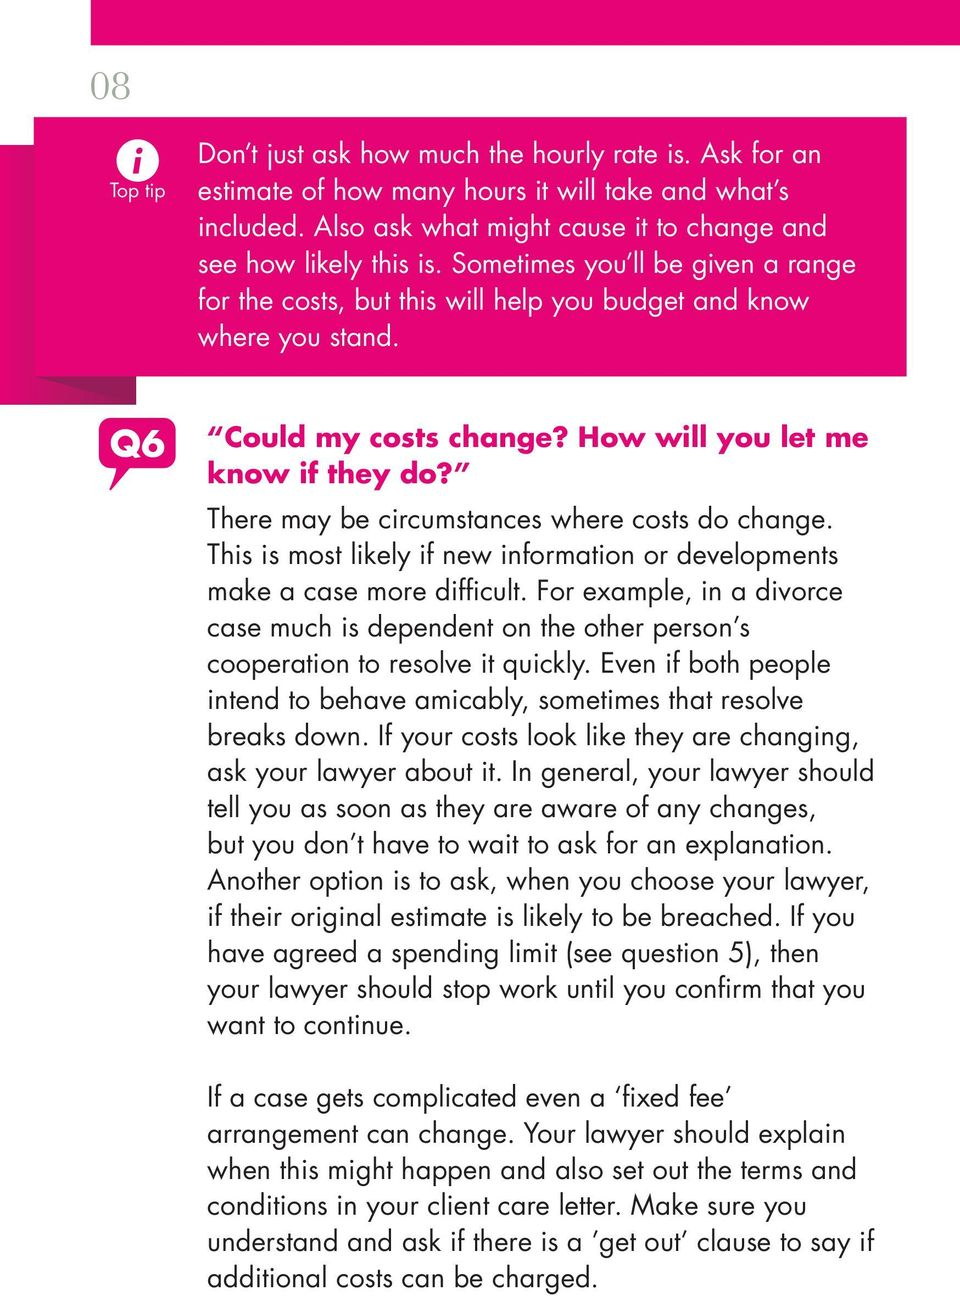 Ten questions to ask your lawyer about costs - PDF